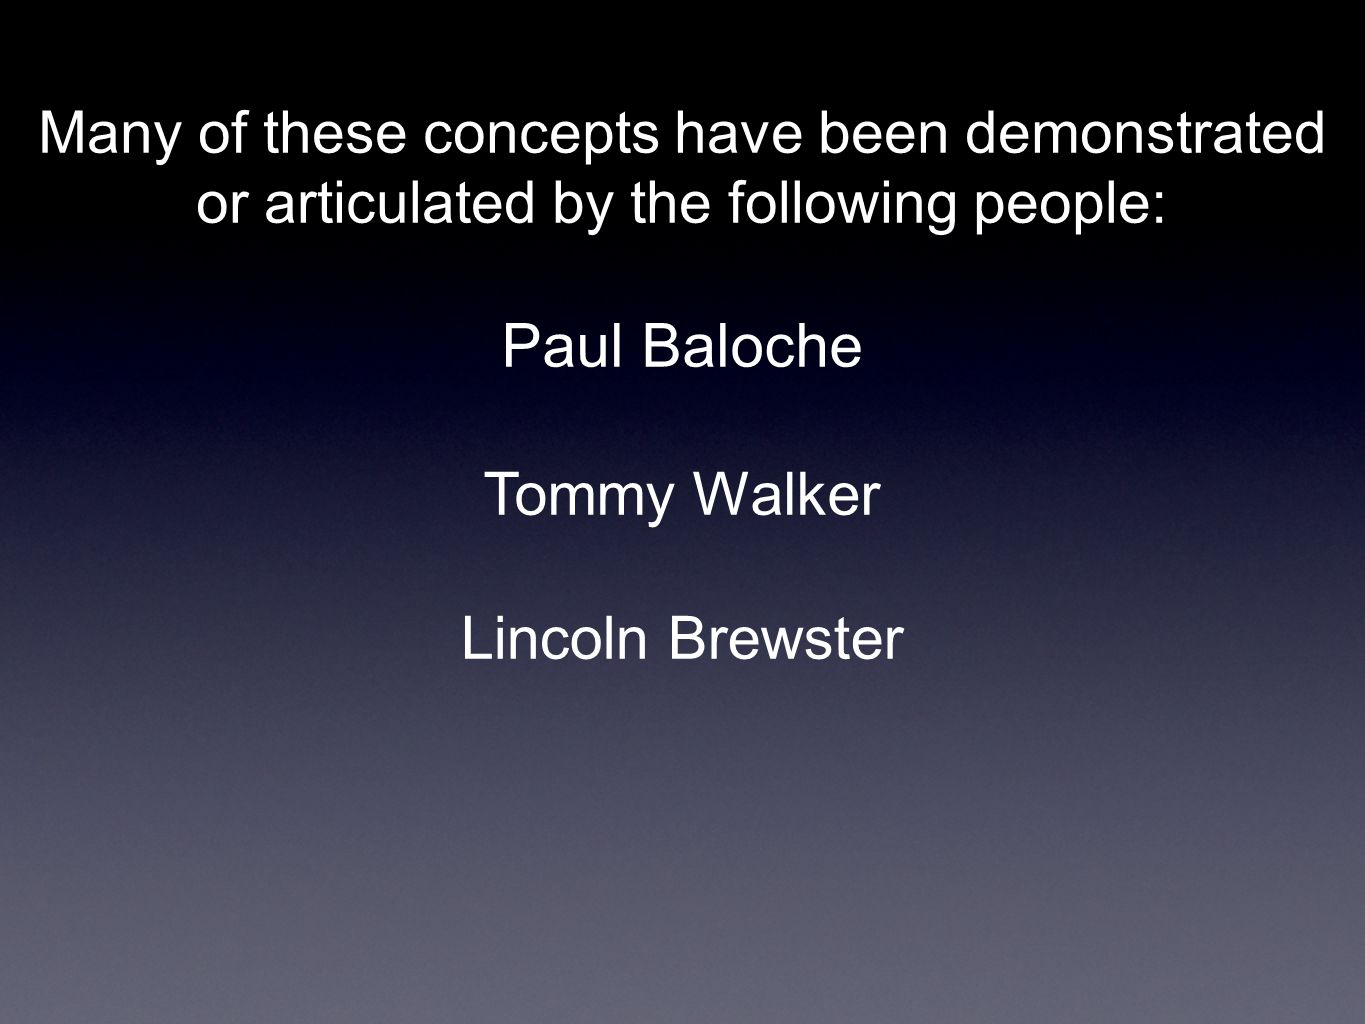 Many of these concepts have been demonstrated or articulated by the following people: Paul Baloche Lincoln Brewster Tommy Walker